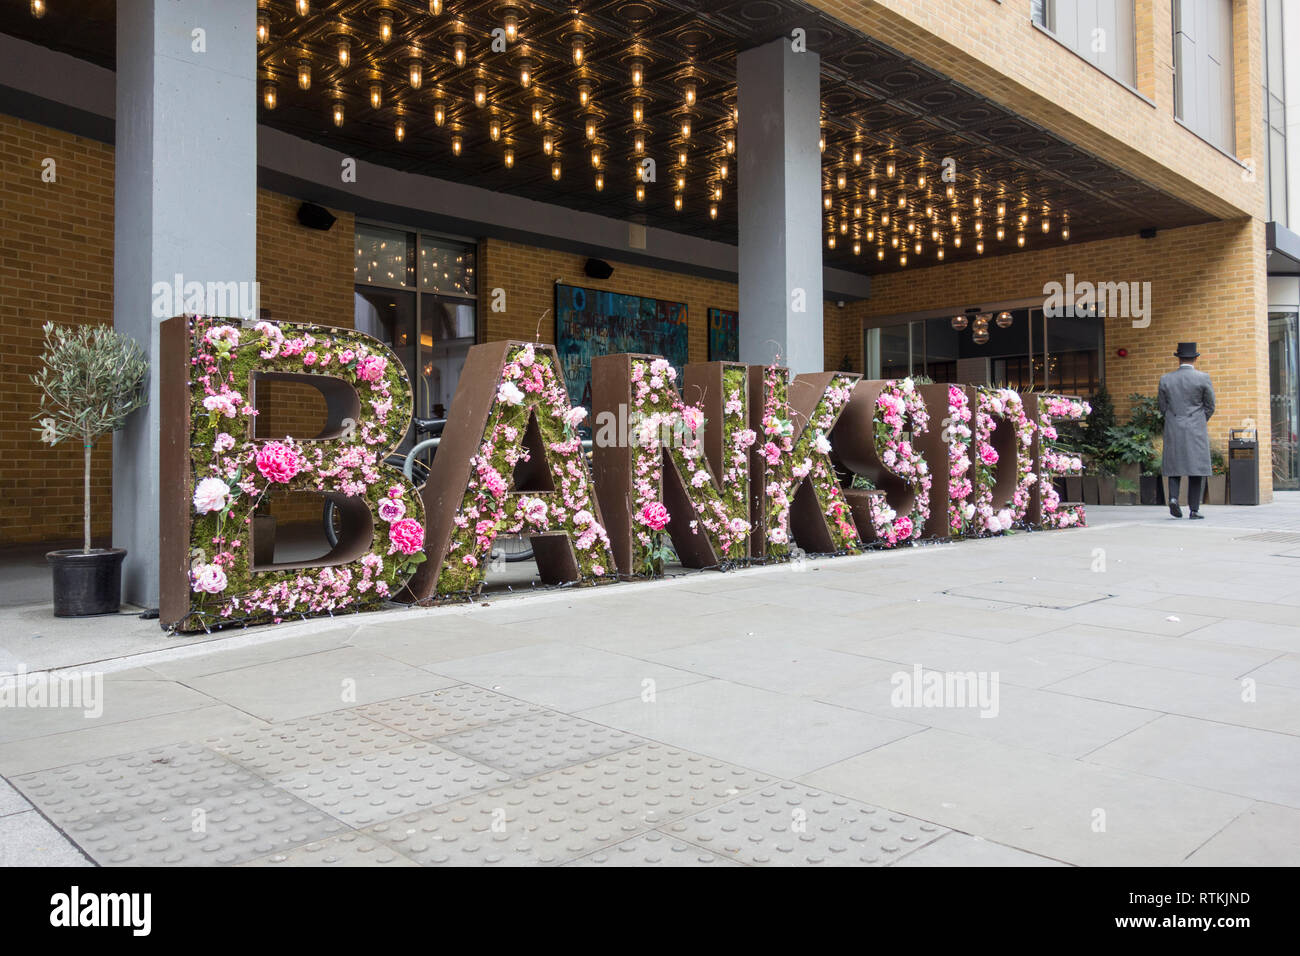 Floral display outside Hilton Hotel, Great Suffolk Street, Bankside, London, SE1, UK - Stock Image